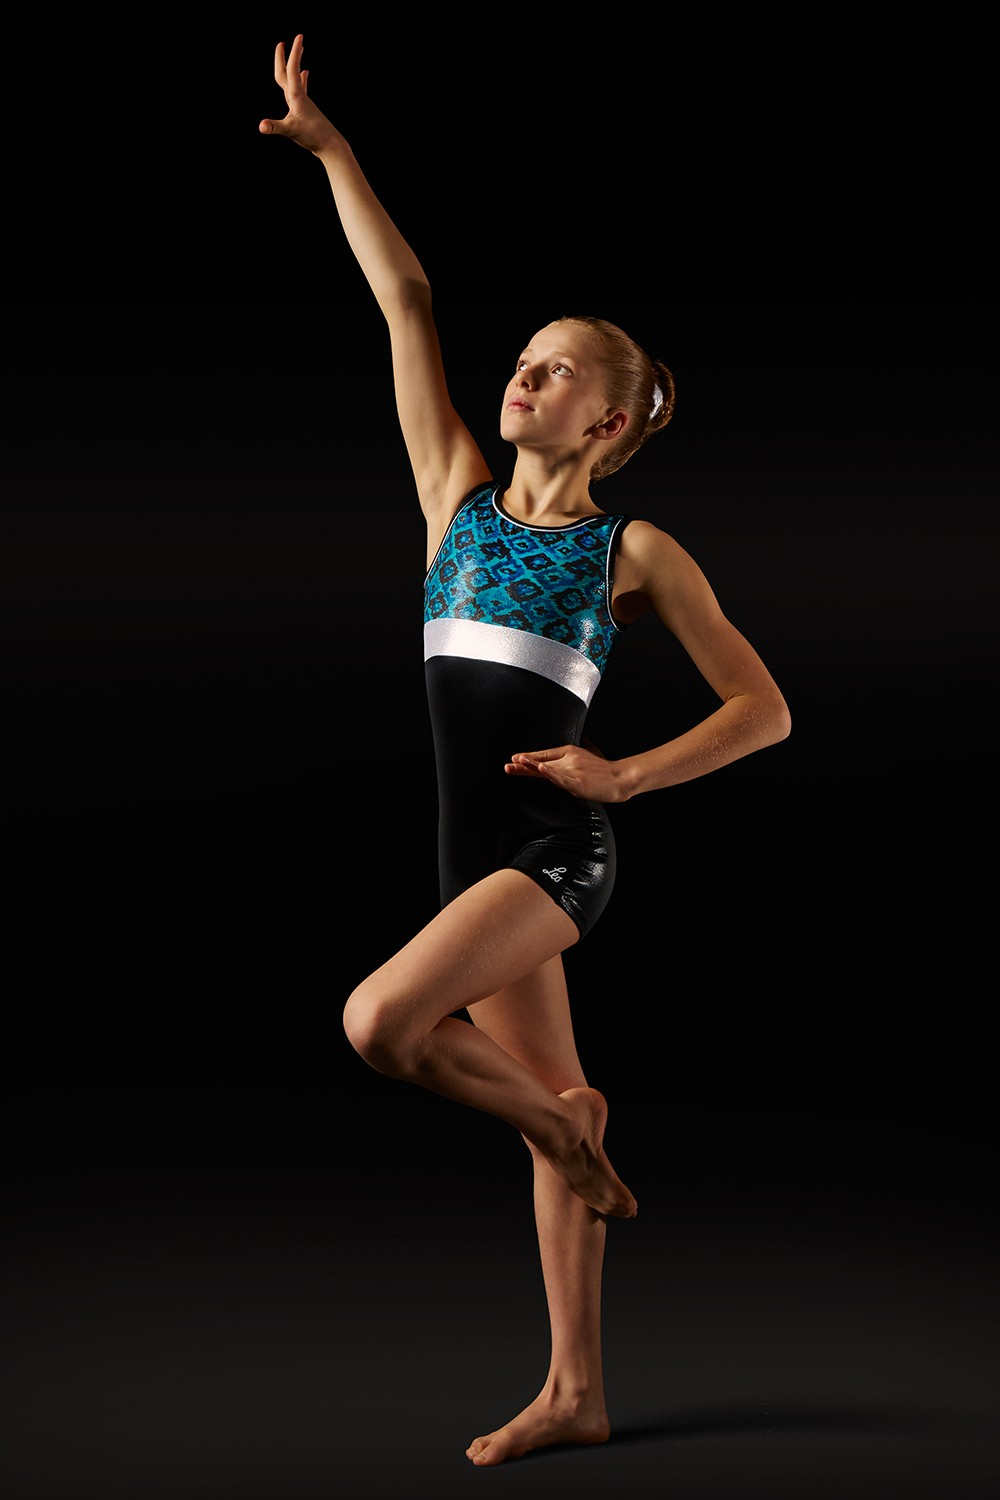 Aztec Print Unitard - Girls Girl's Gymnastics Unitards